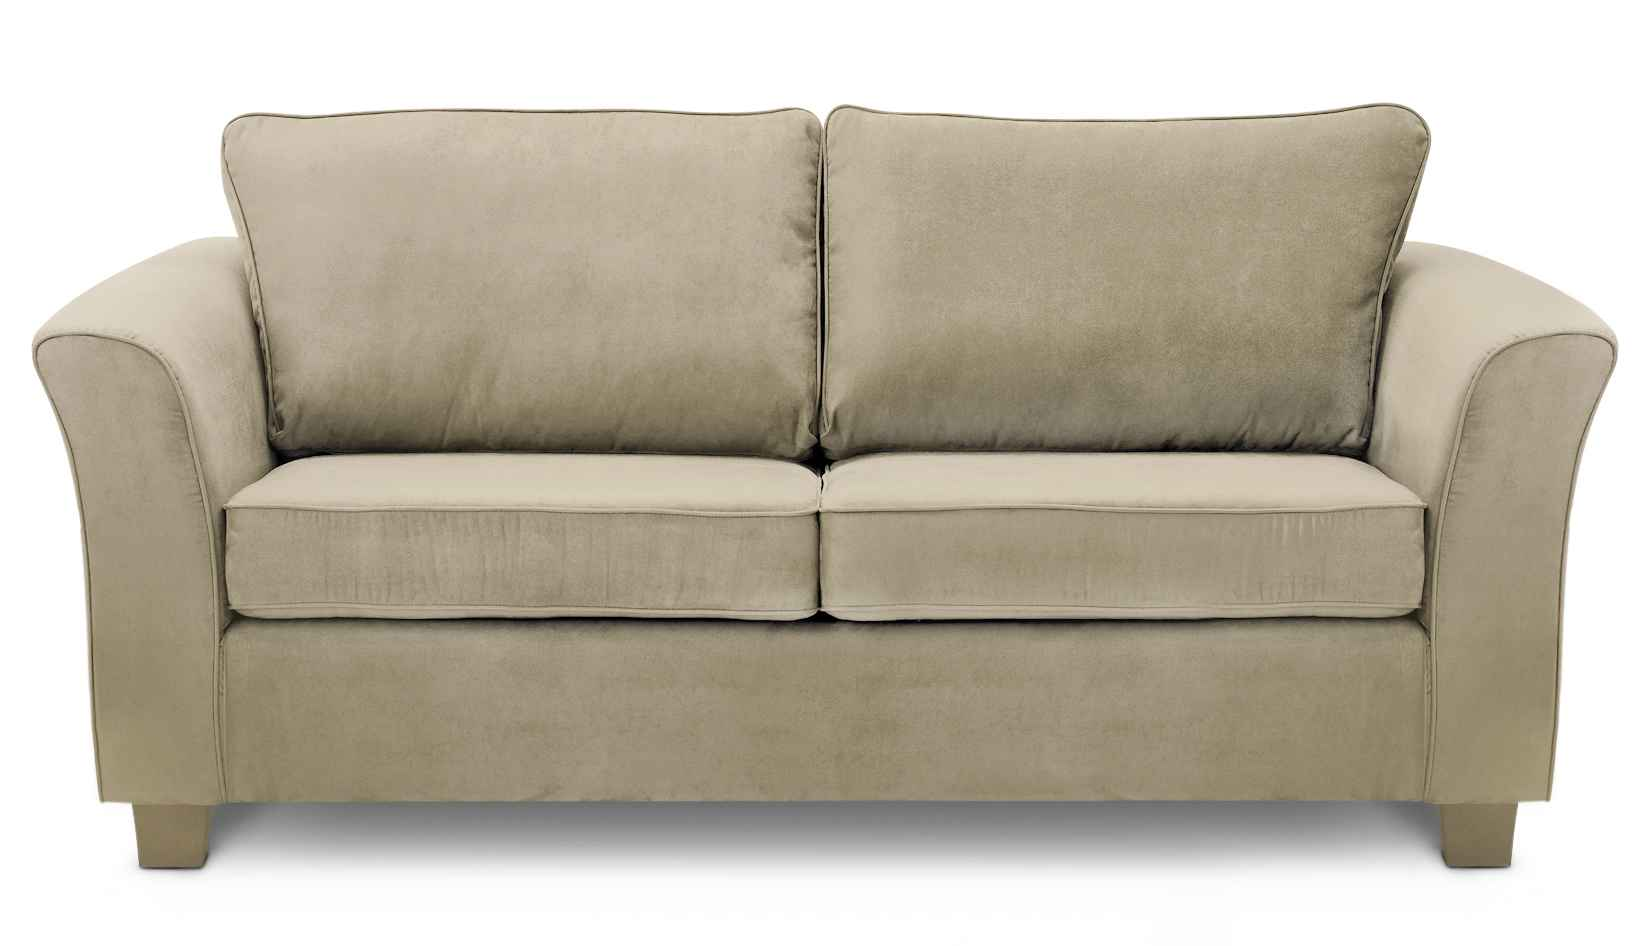 Cheap brown fabric sofa for sale